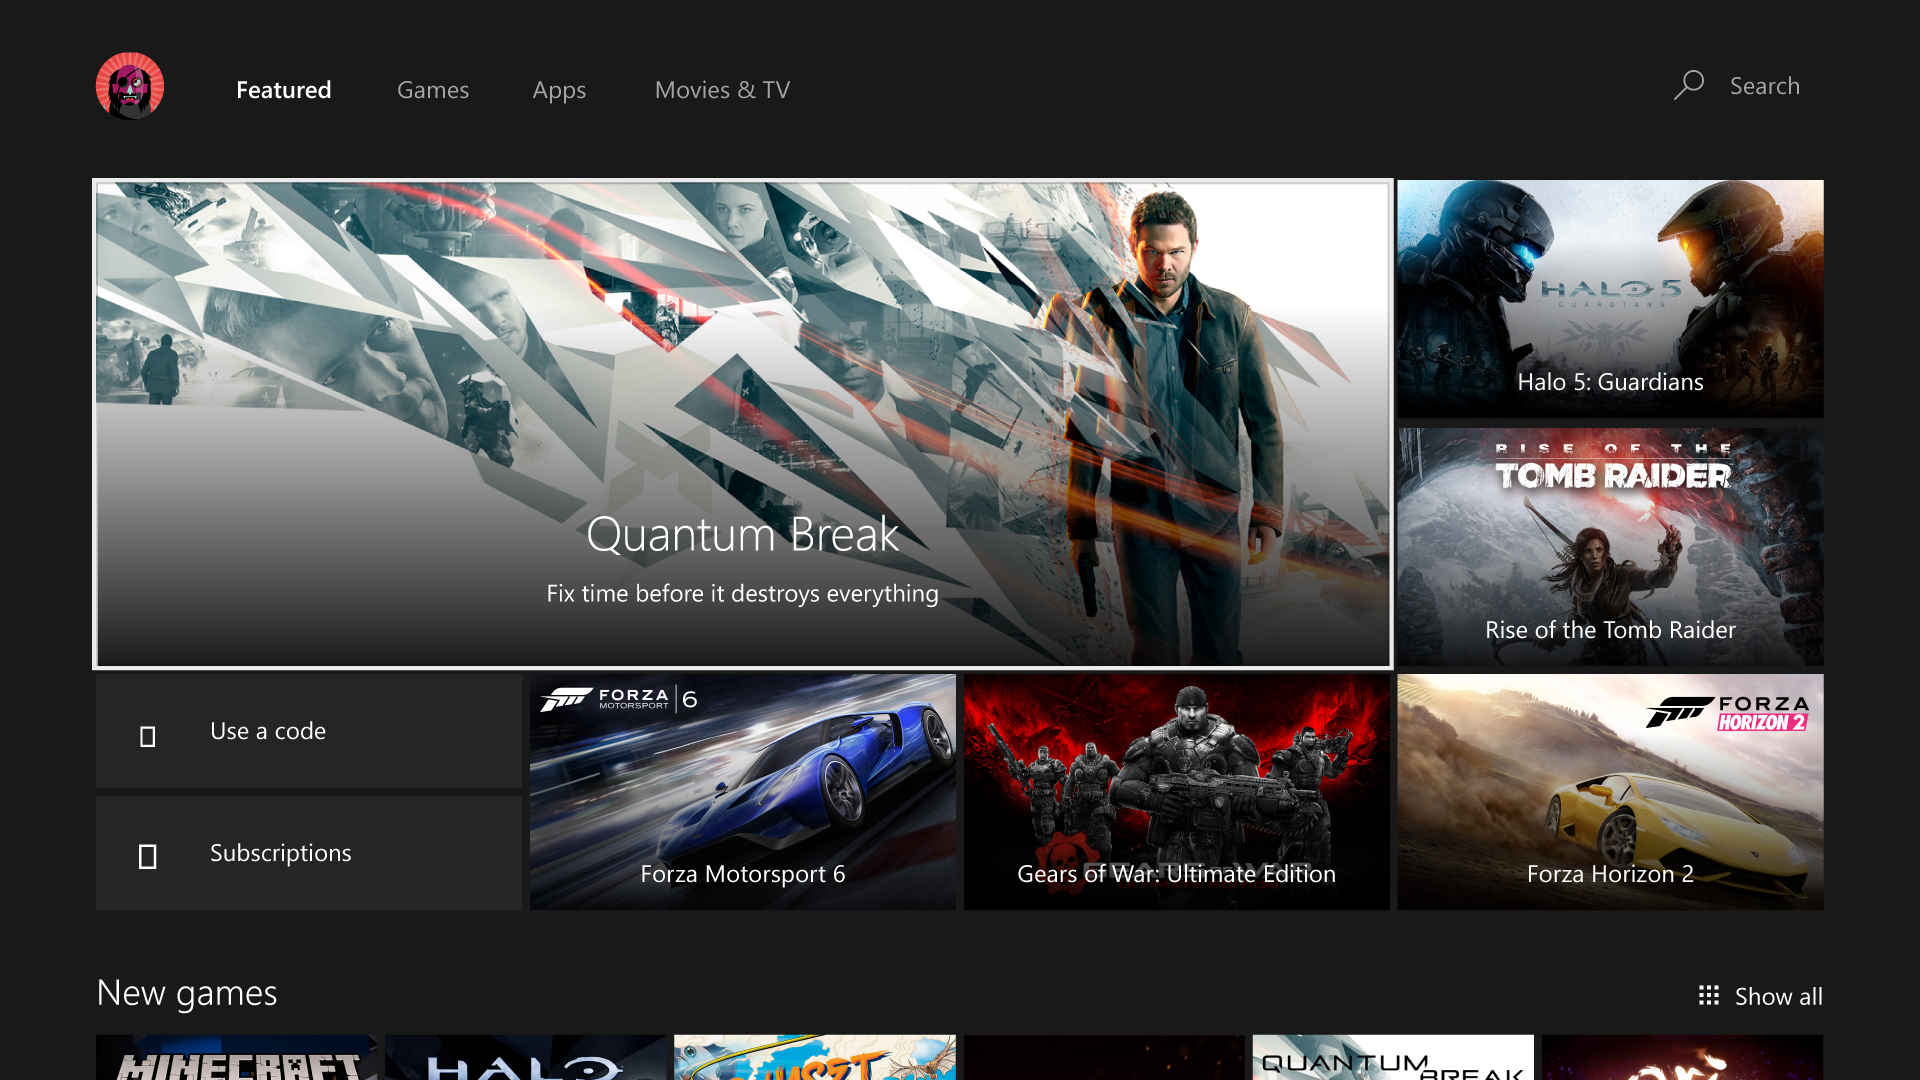 Xbox One preview members can chat with Cortana starting this